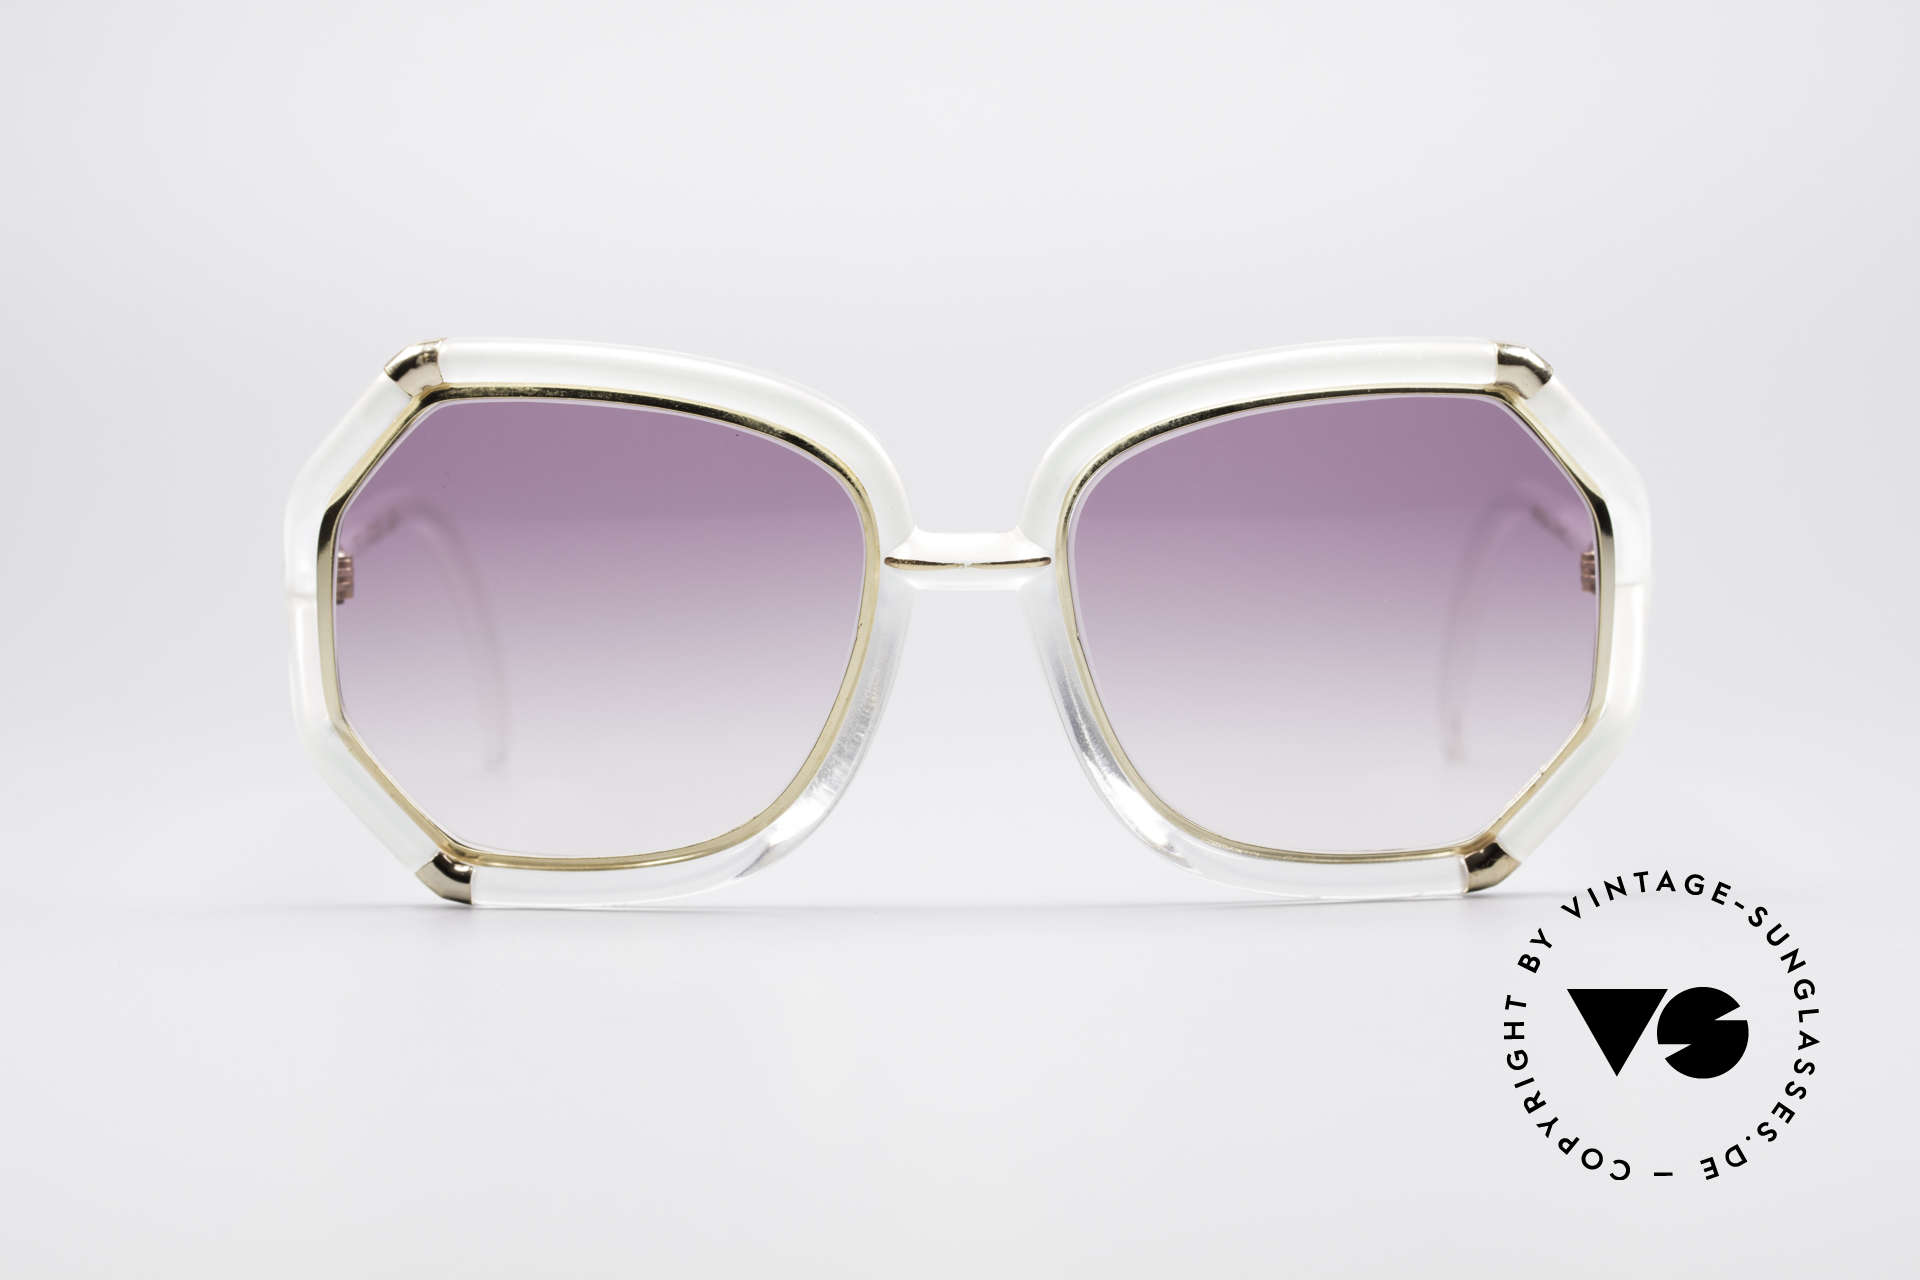 Ted Lapidus B08 70's Designer Sunglasses, light pink frame with golden appliqué - just fancy!!, Made for Women